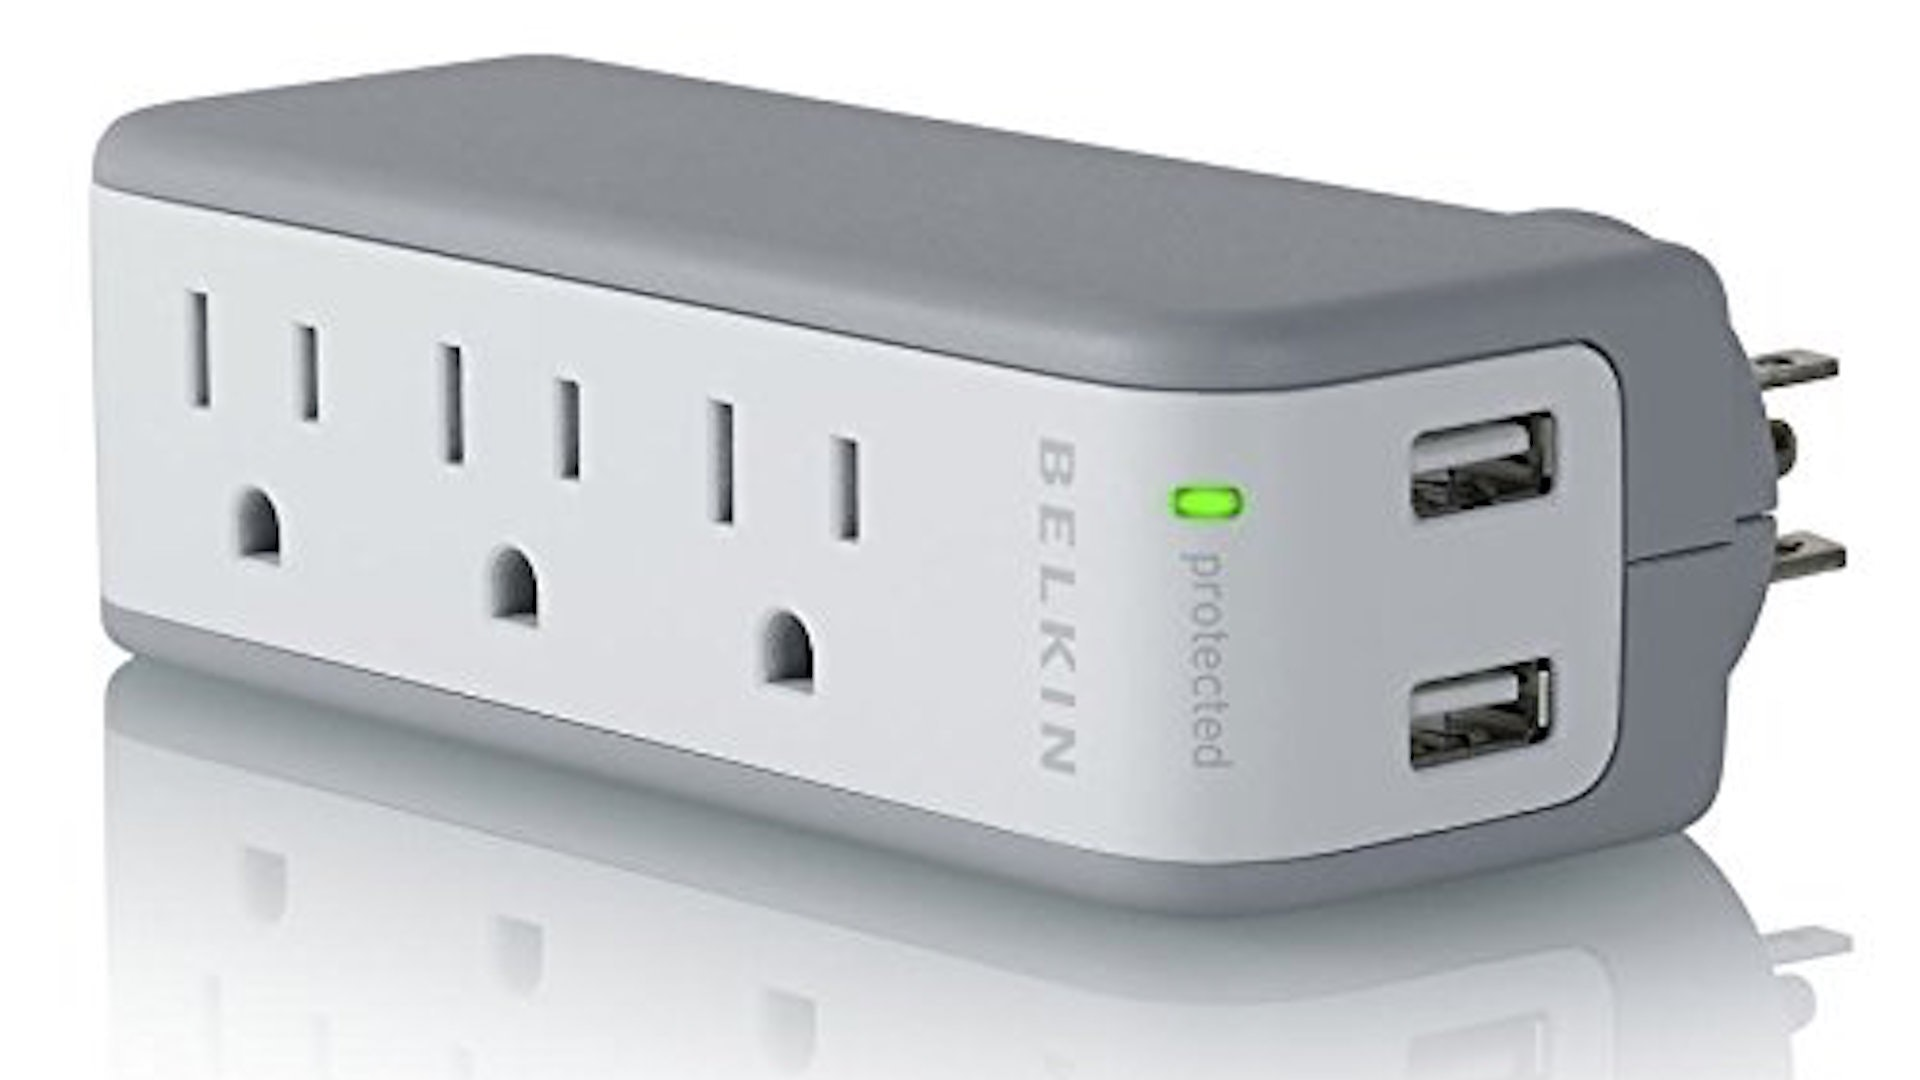 This crazy useful portable mini surge protector with USB